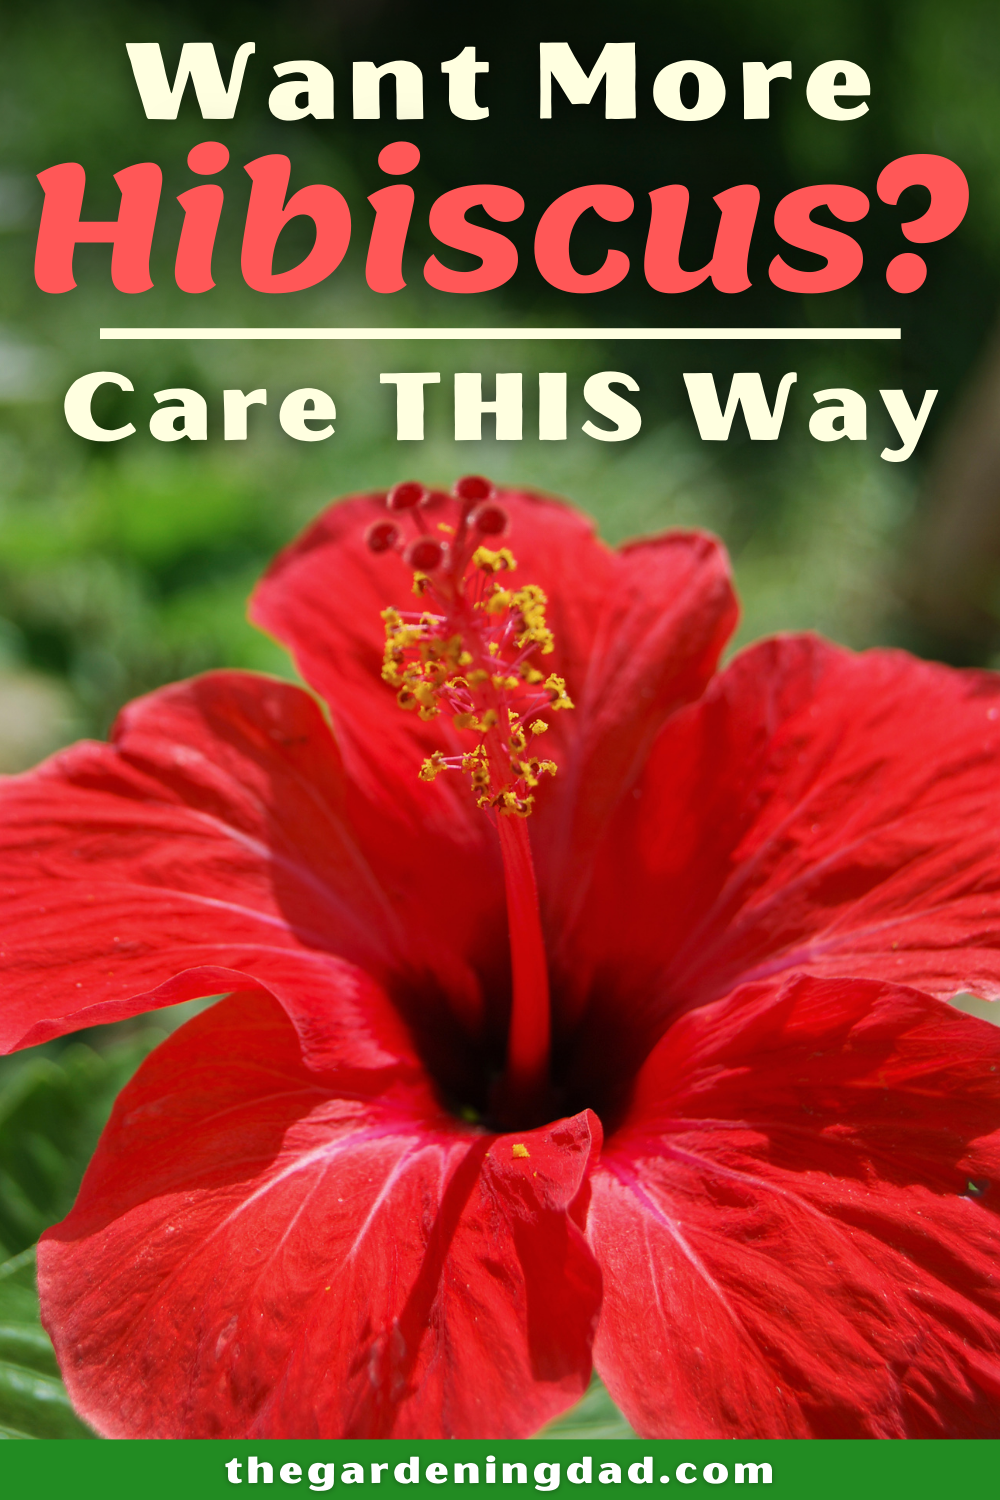 Ultimate Guide To Hibiscus Care Indoors The Gardening Dad Plant Care Growing Vegetables Gardening For Beginners